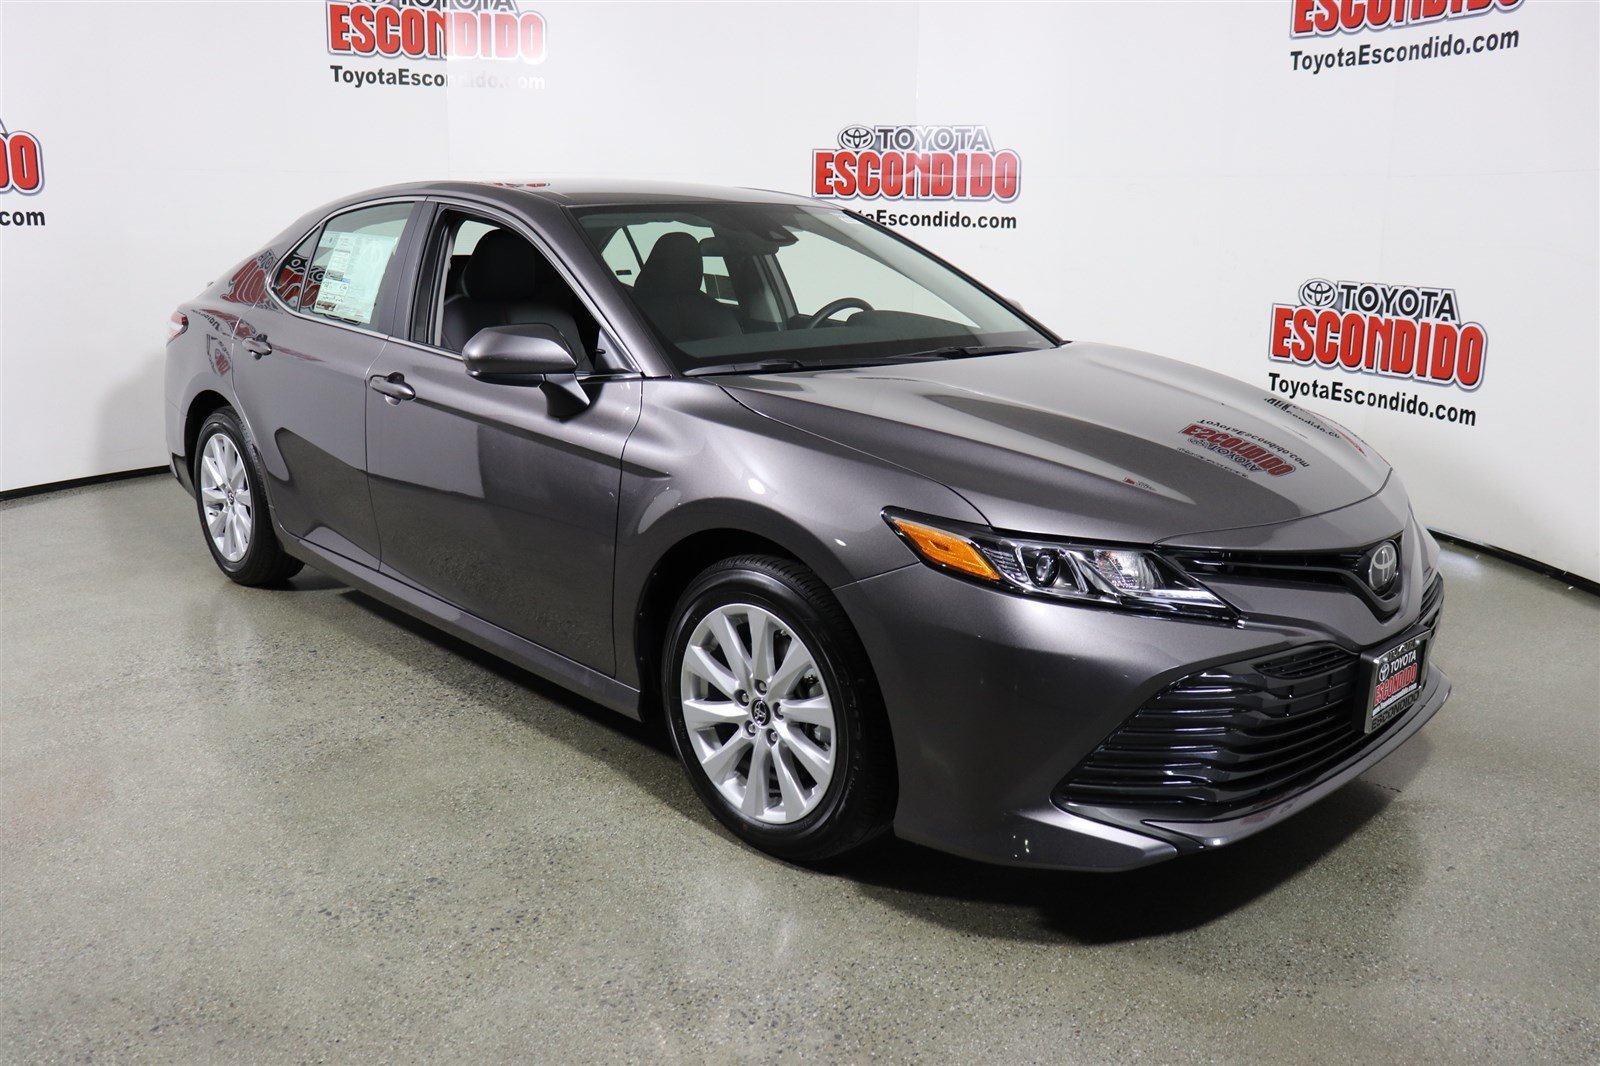 New 2019 Toyota Camry Le 4dr Car In Escondido 1021442 Toyota